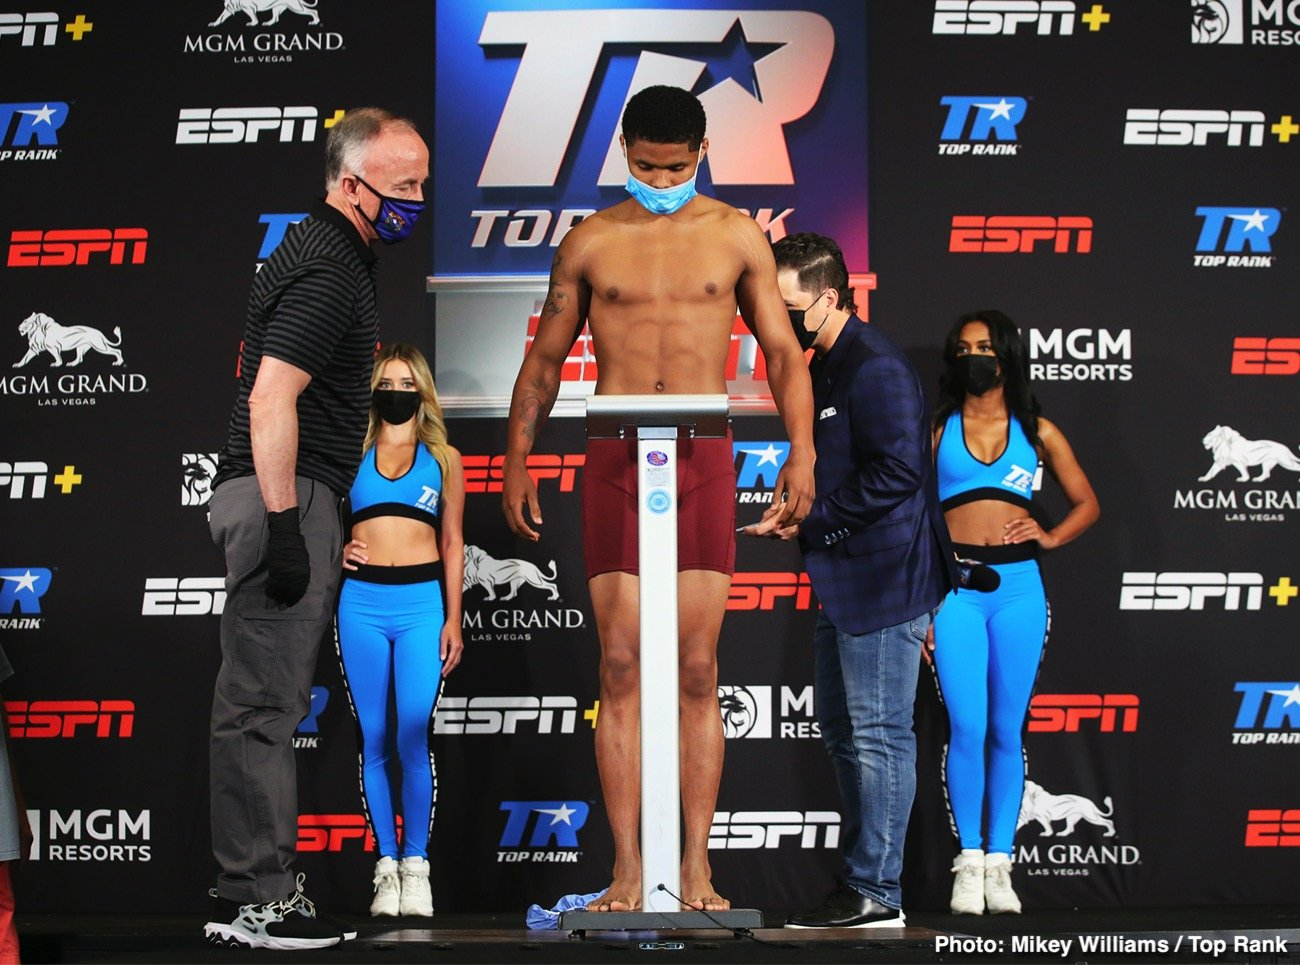 Felix Caraballo, Shakur Stevenson - Shakur Stevenson (13-0, 7 KOs) and Felix Caraballo (13-1-2, 9 KOs) weighed in at 130-lbs for their super featherweight non-title match-up on Thursday on June 9. Caraballo in 1/2 pound over the limit at 130.5 lbs during the first weigh-in attempt, and then had to go back take the extra weight off. It was no problem for him to make the weight when he reweighed.